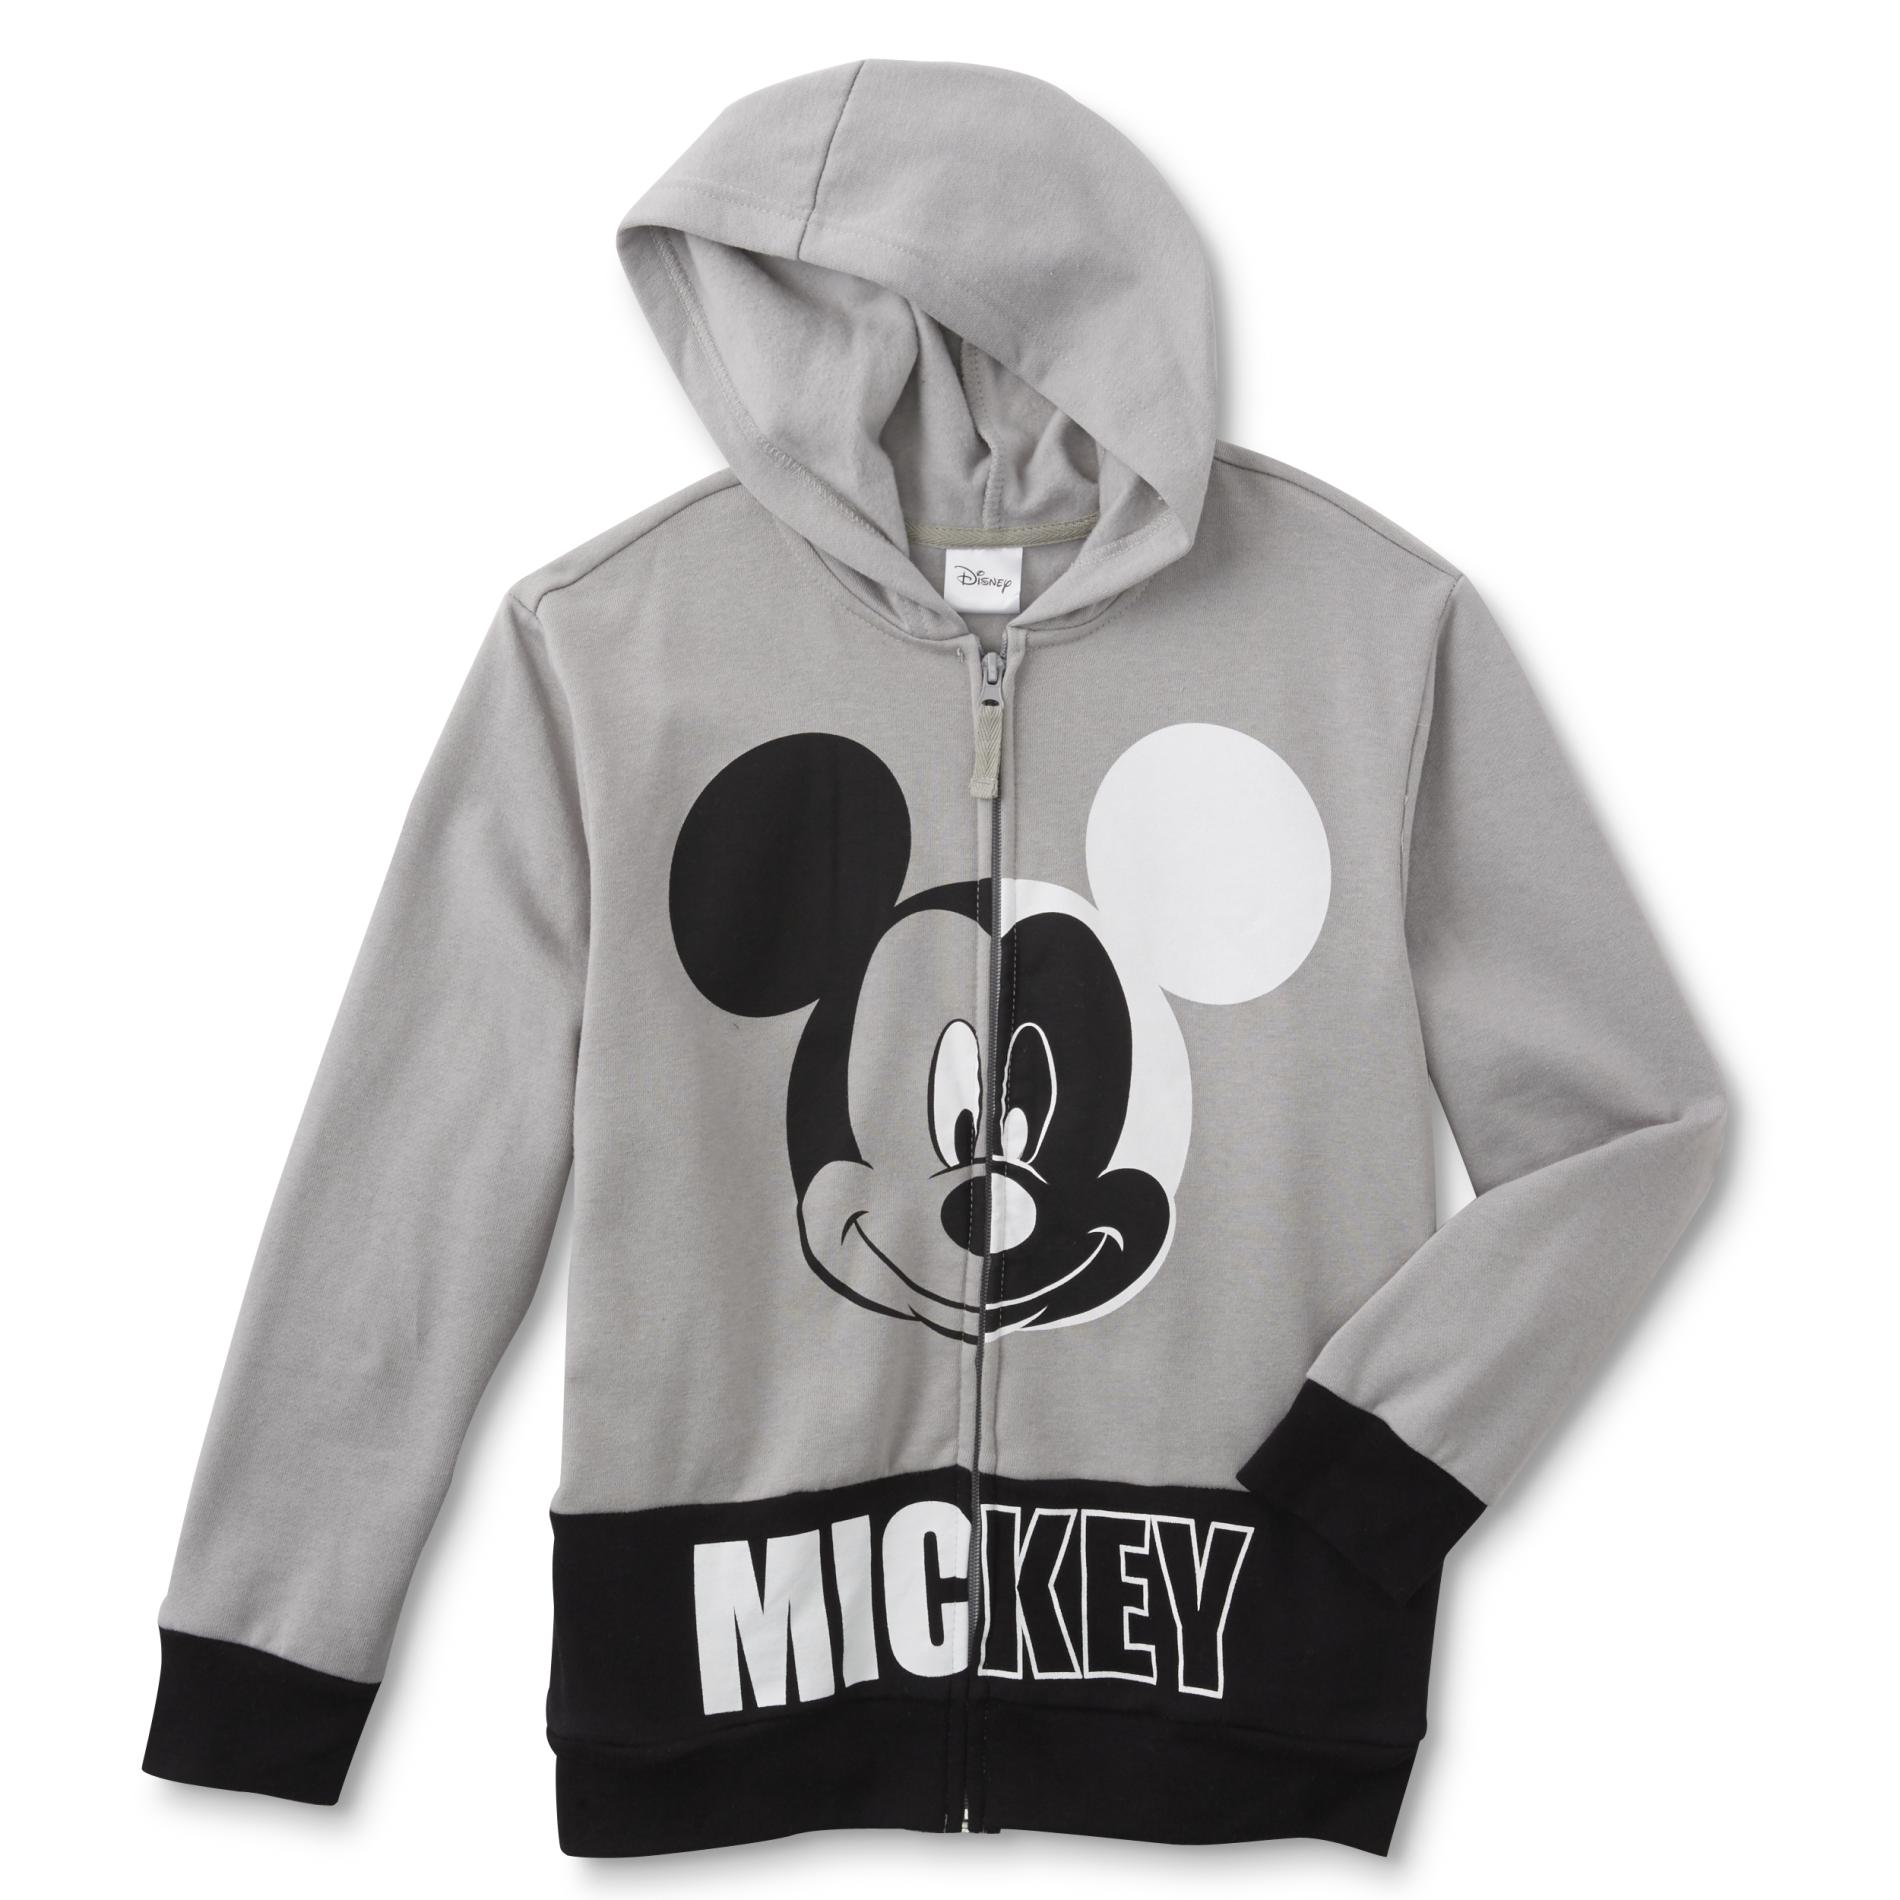 Shop for disney hoodies for kids online at Target. Free shipping on purchases over $35 and save 5% every day with your Target REDcard.